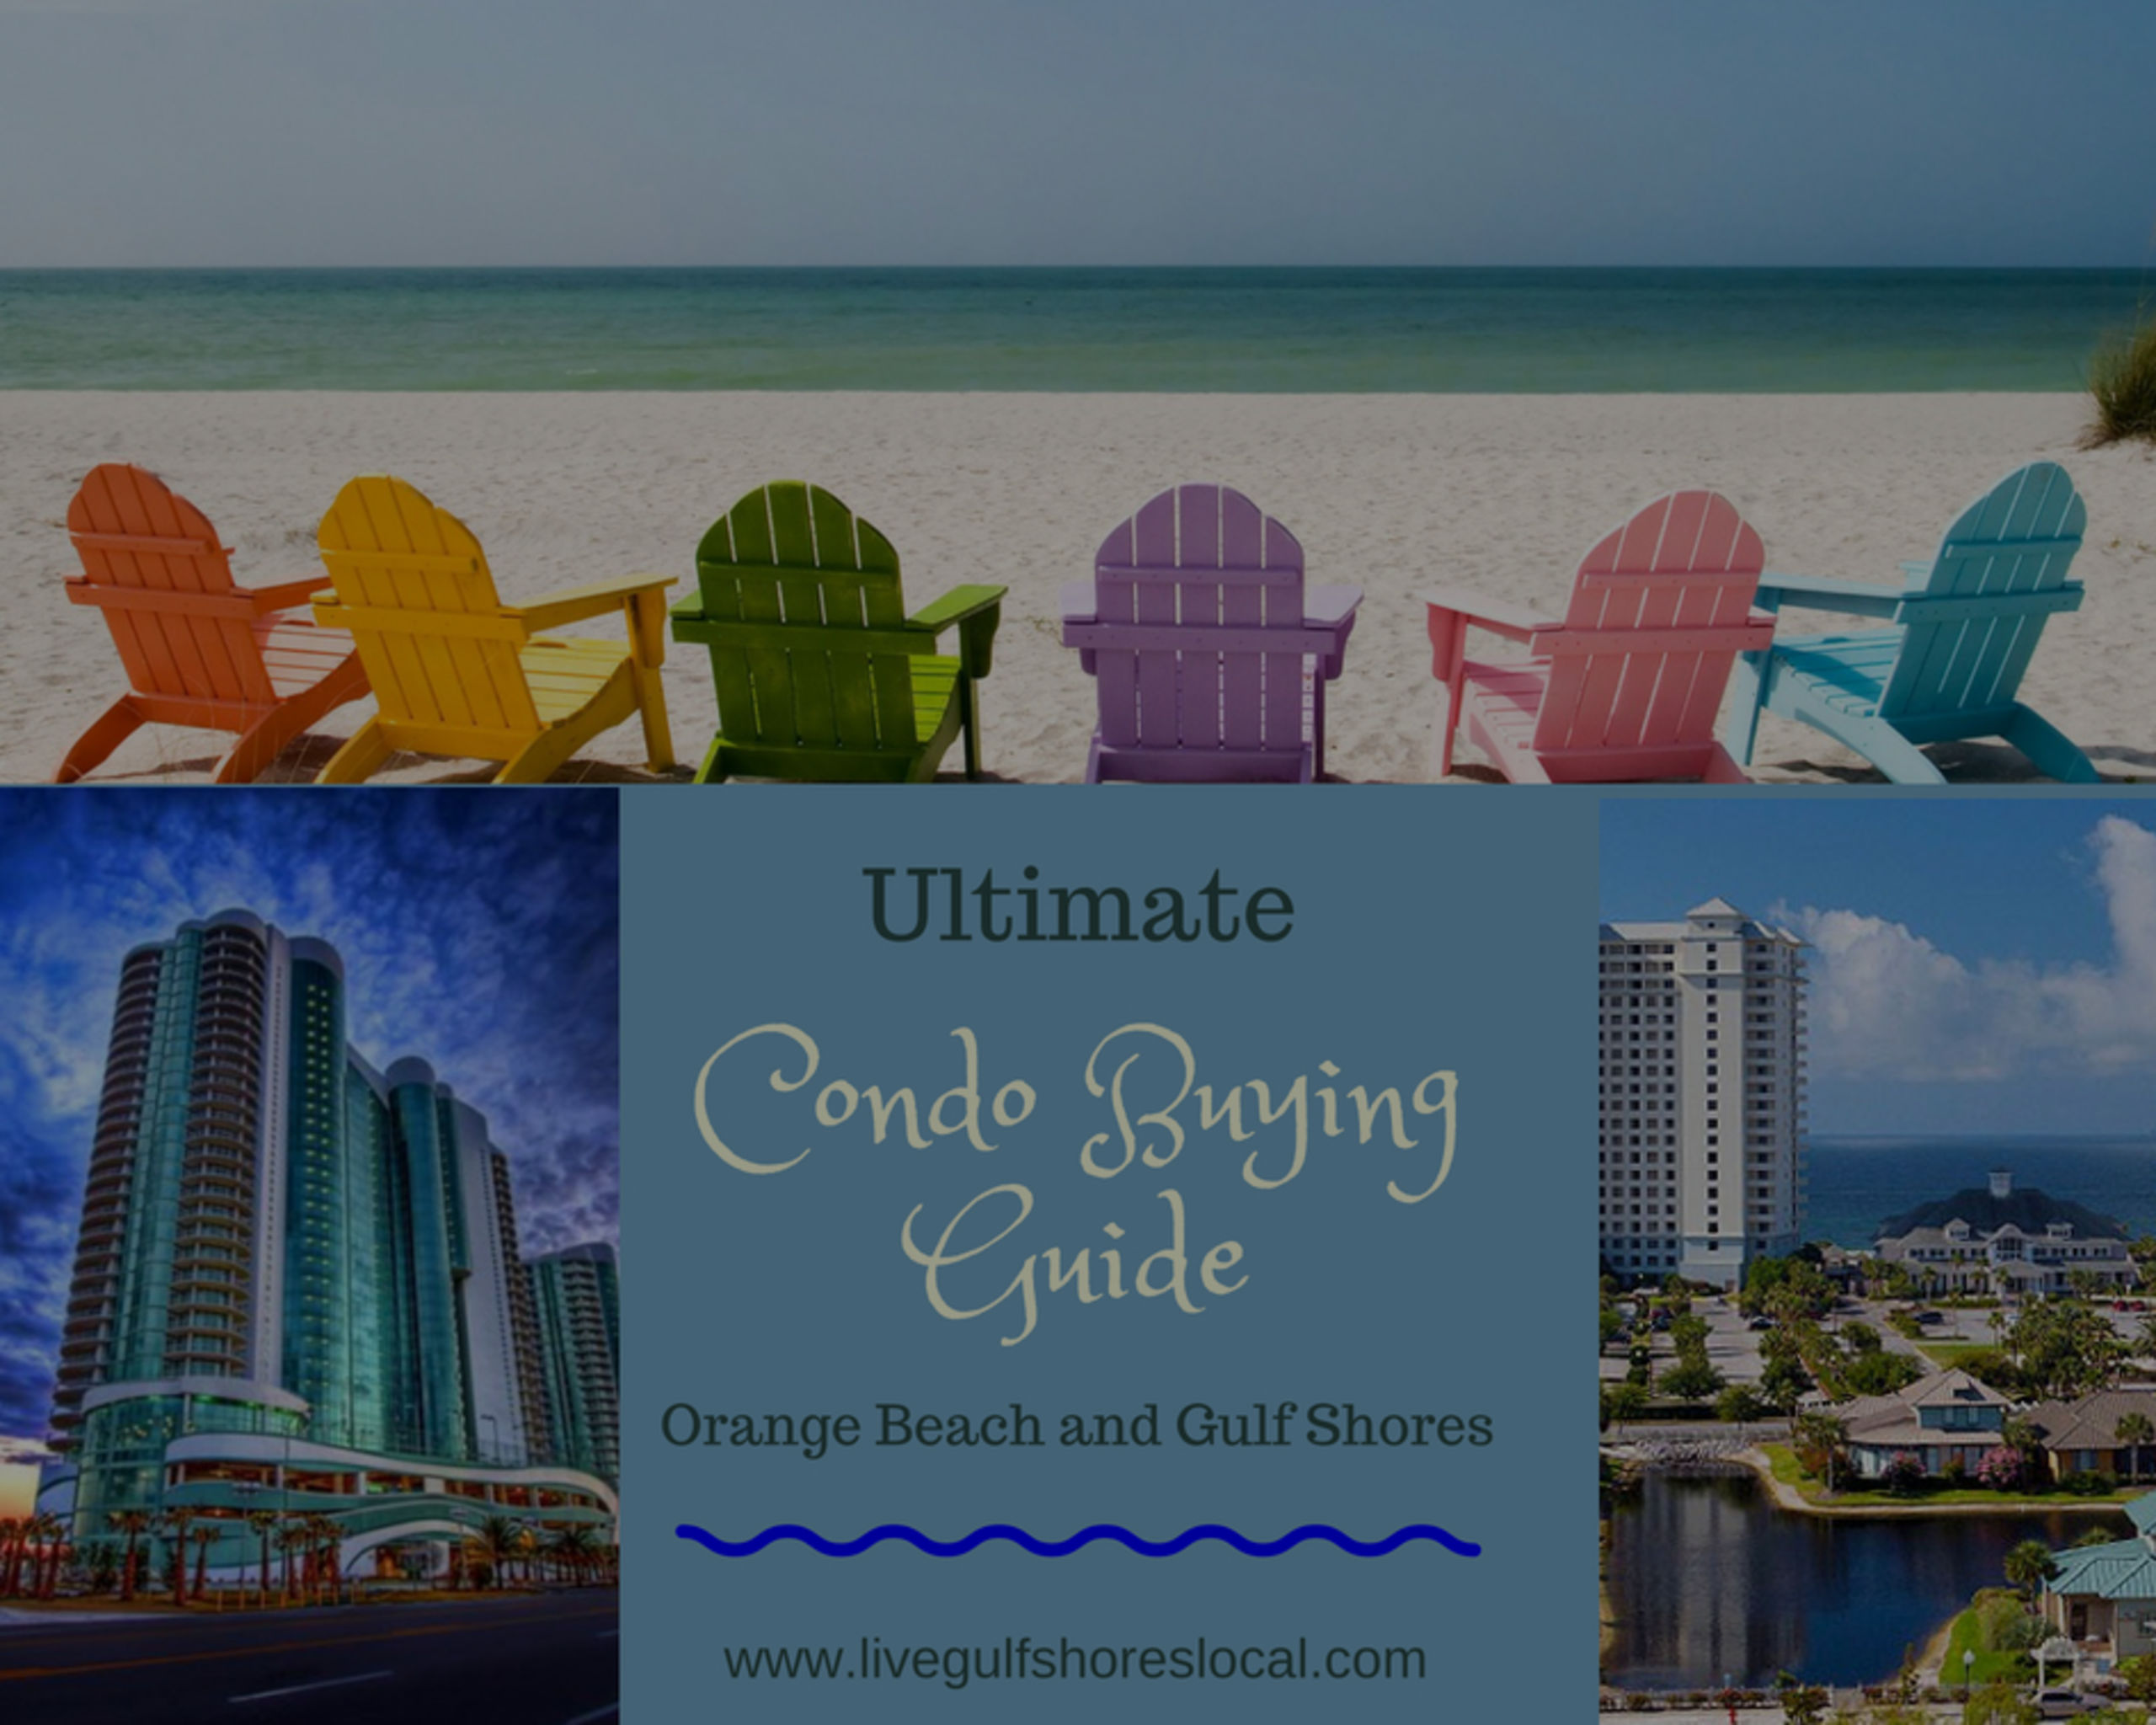 Ultimate Condo Buying Guide – Orange Beach and Gulf Shores